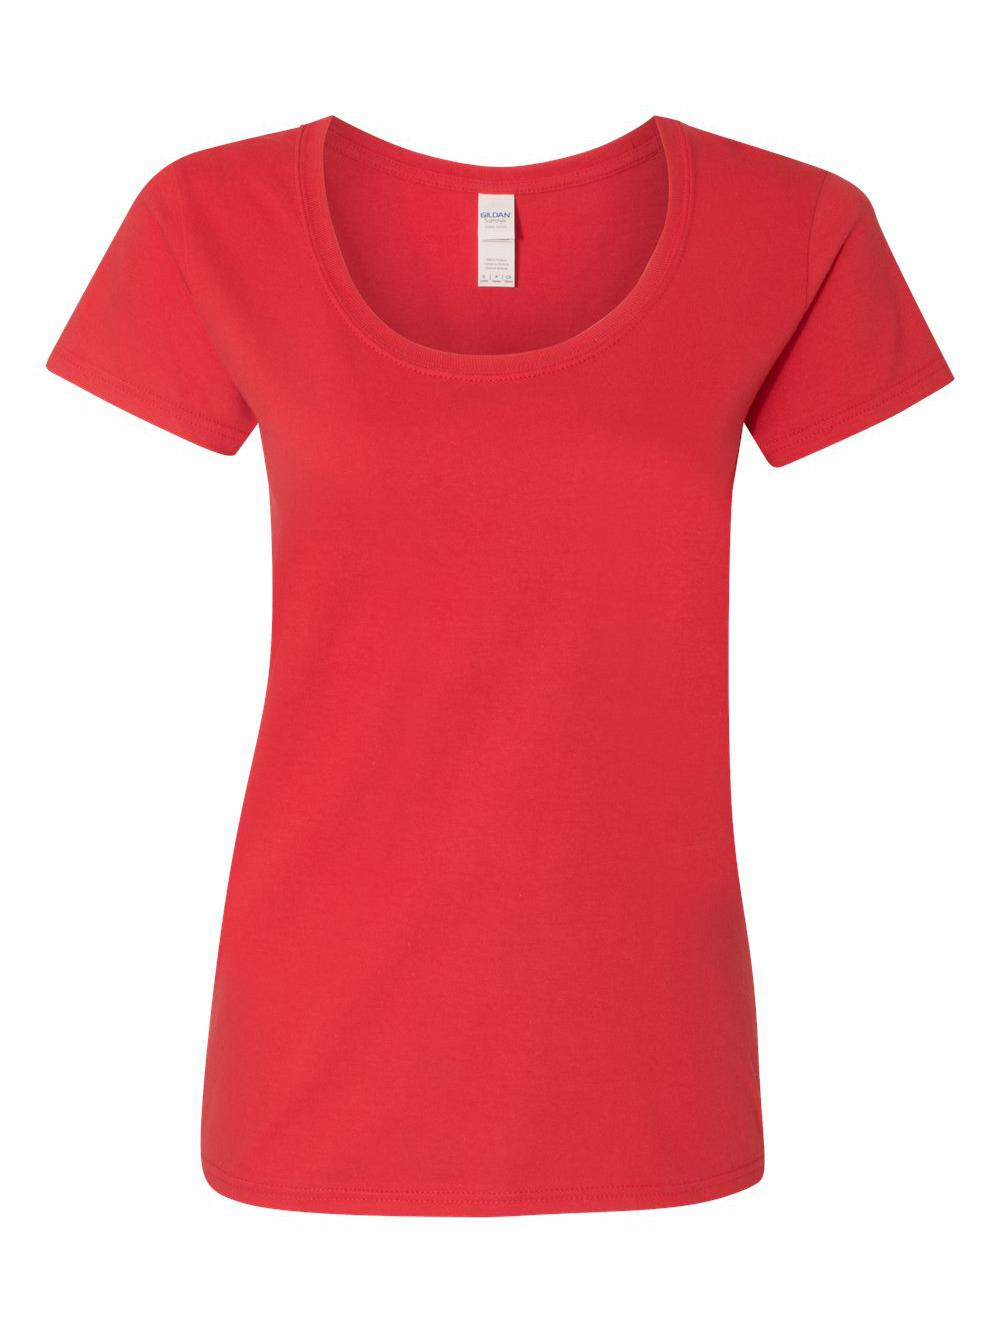 Gildan-Softstyle-Women-039-s-Deep-Scoopneck-T-Shirt-64550L thumbnail 39